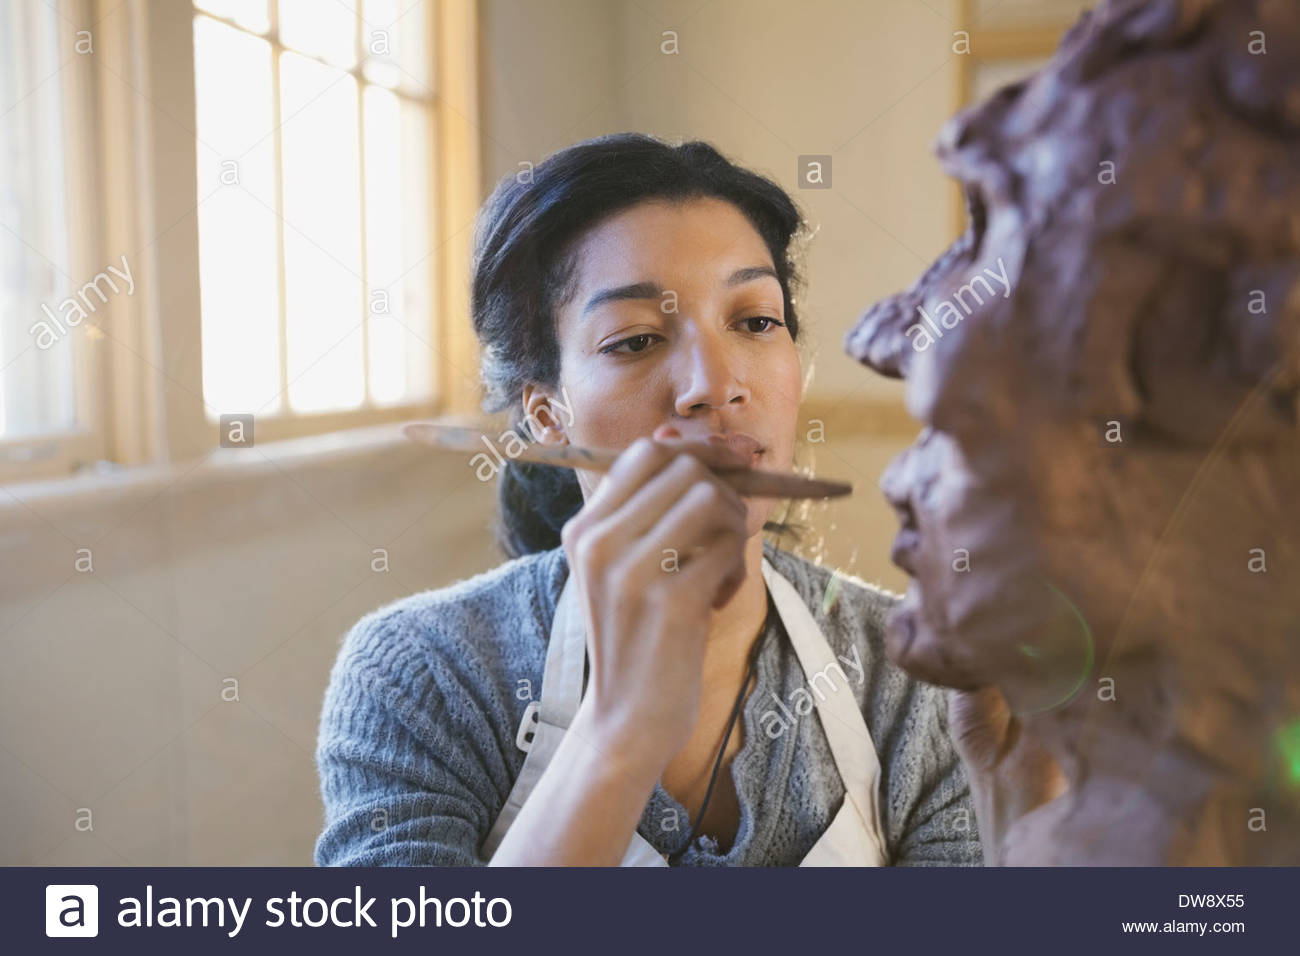 Artist working on clay sculpture in pottery studio - Stock Image